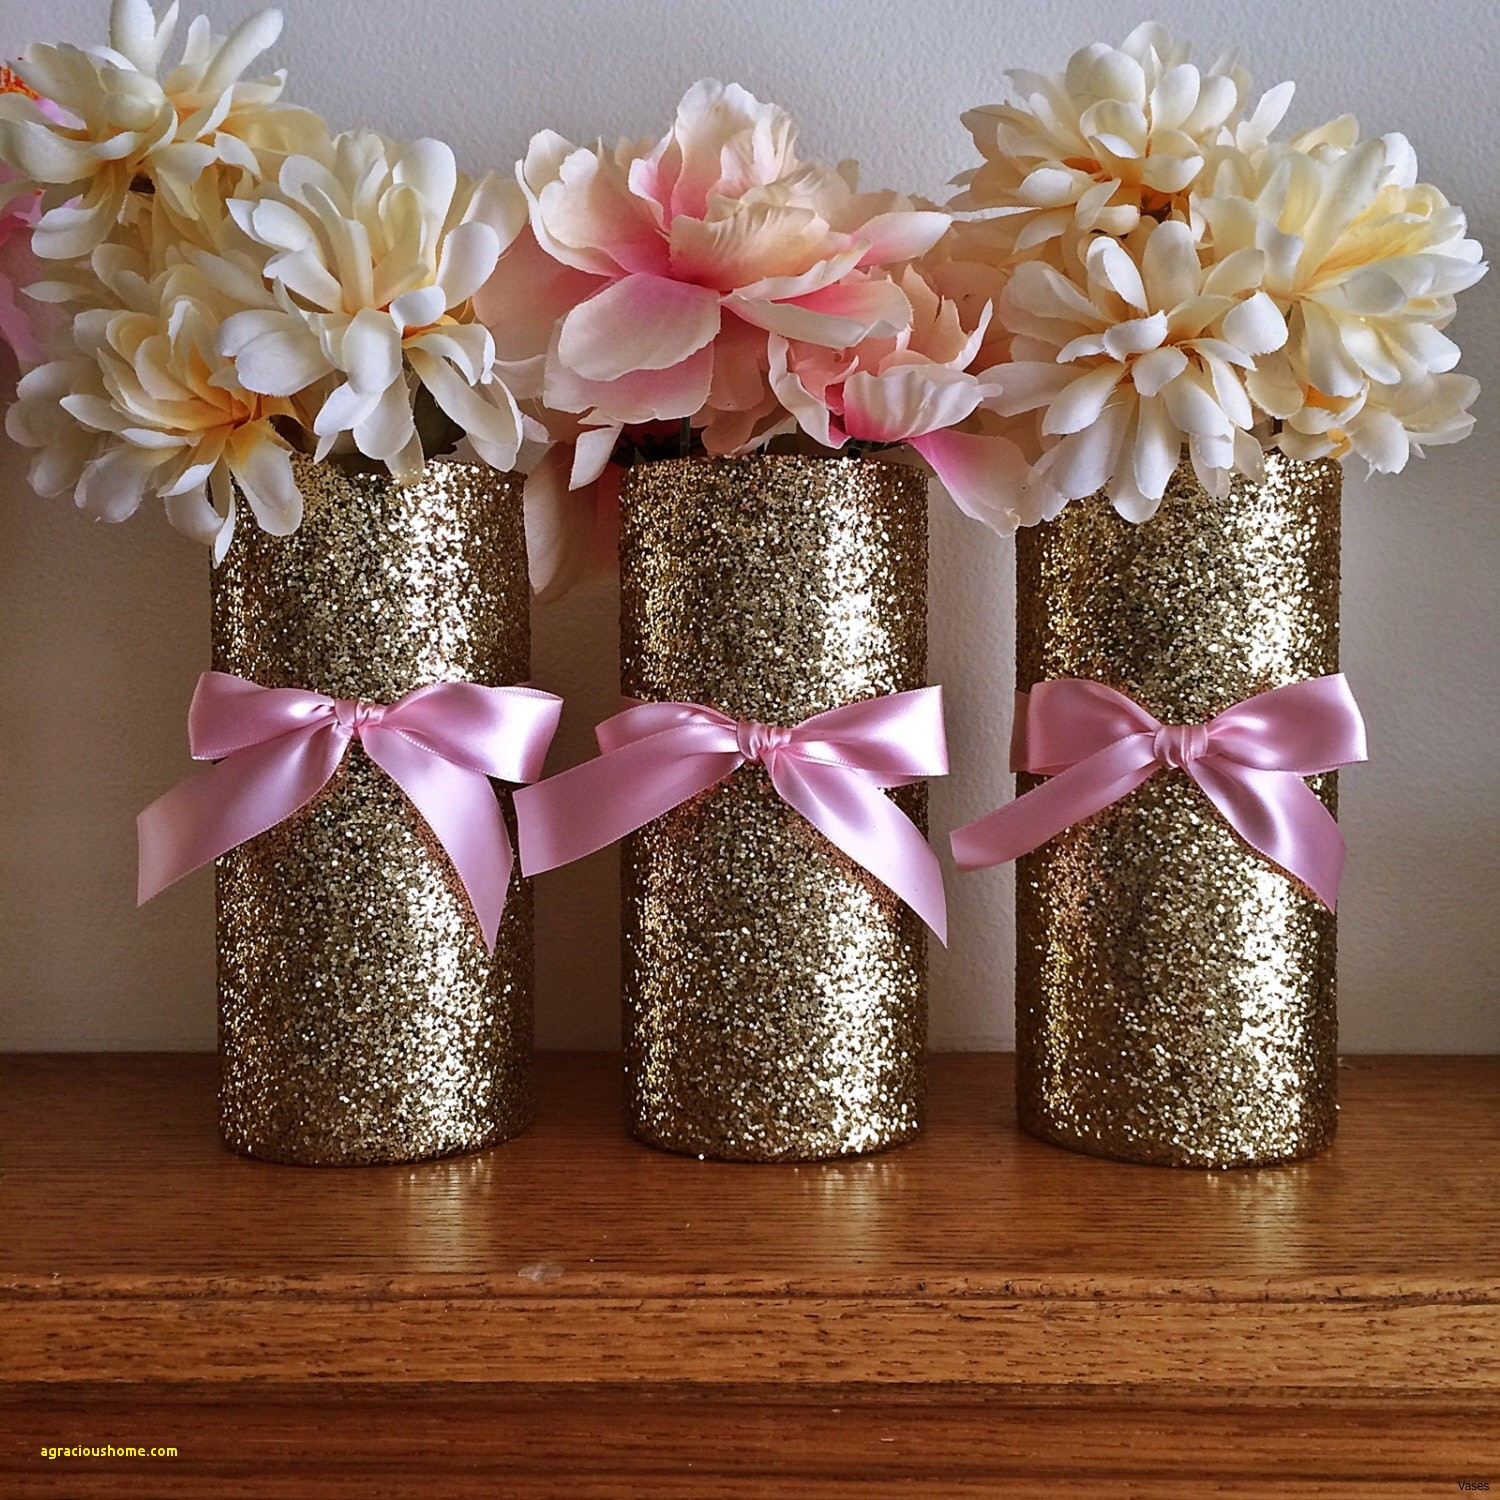 baby shower vases of royal prince baby shower decorations with vases baby 3 gold wedding pink and shower centerpieces centerpiecei 0d